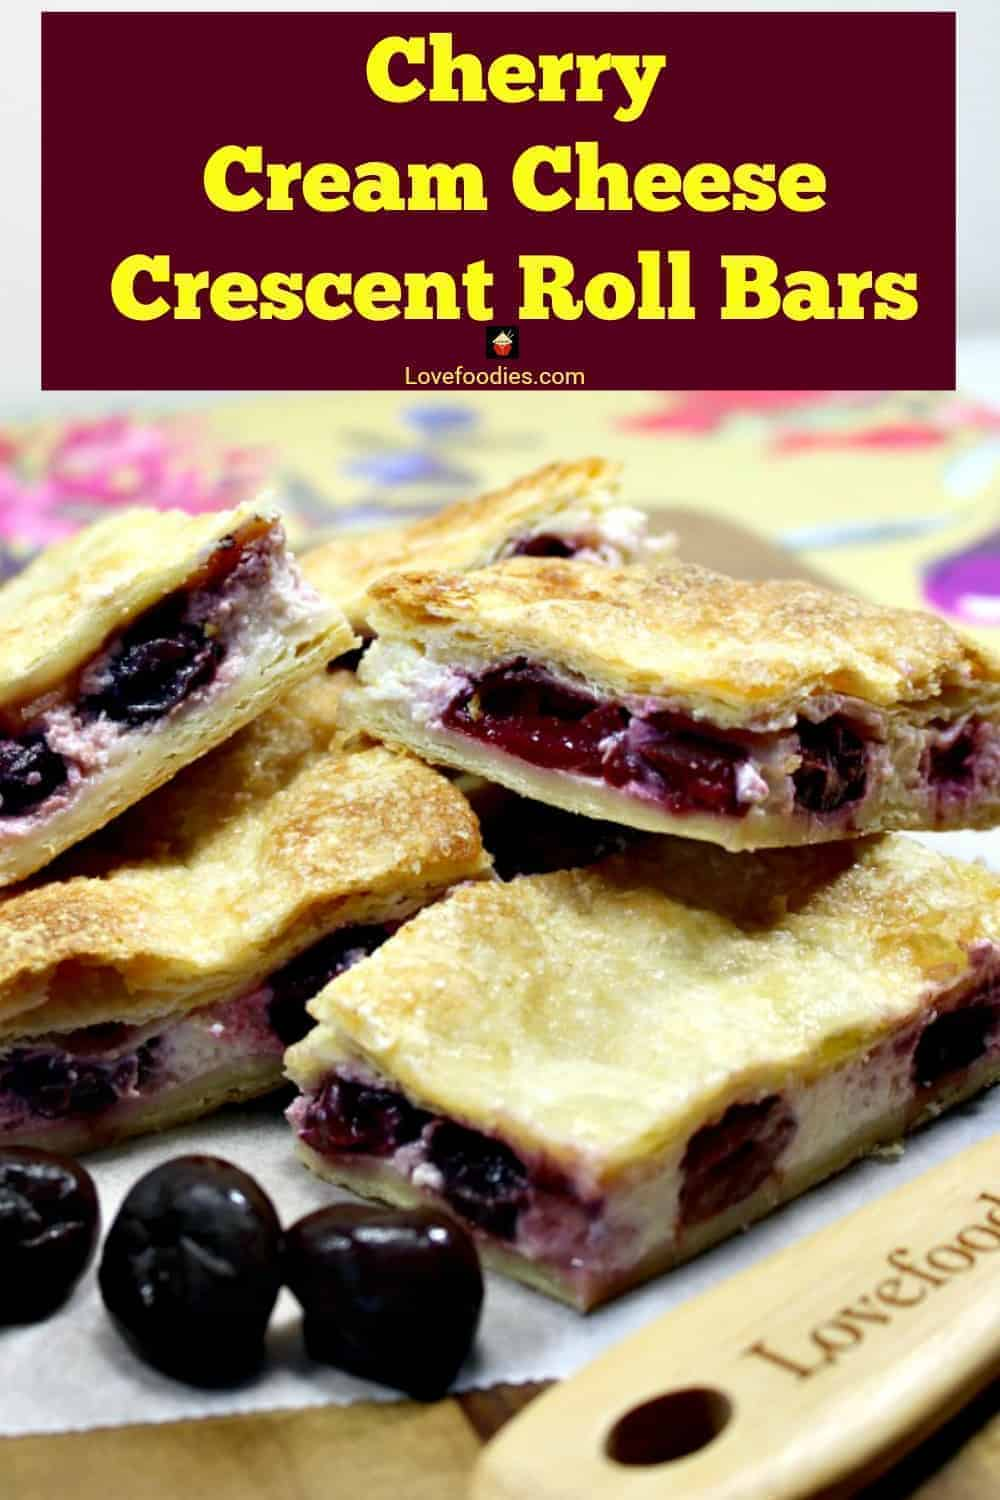 Cherry Crescent Roll Cheesecake Bars. A.K.A Sopapilla Cheesecake Bars. An incredibly quick, easy recipe with cream cheese and cherries sandwiched between layers of flaky buttery golden pastry. Popular cream cheese crescent roll fruit dessert